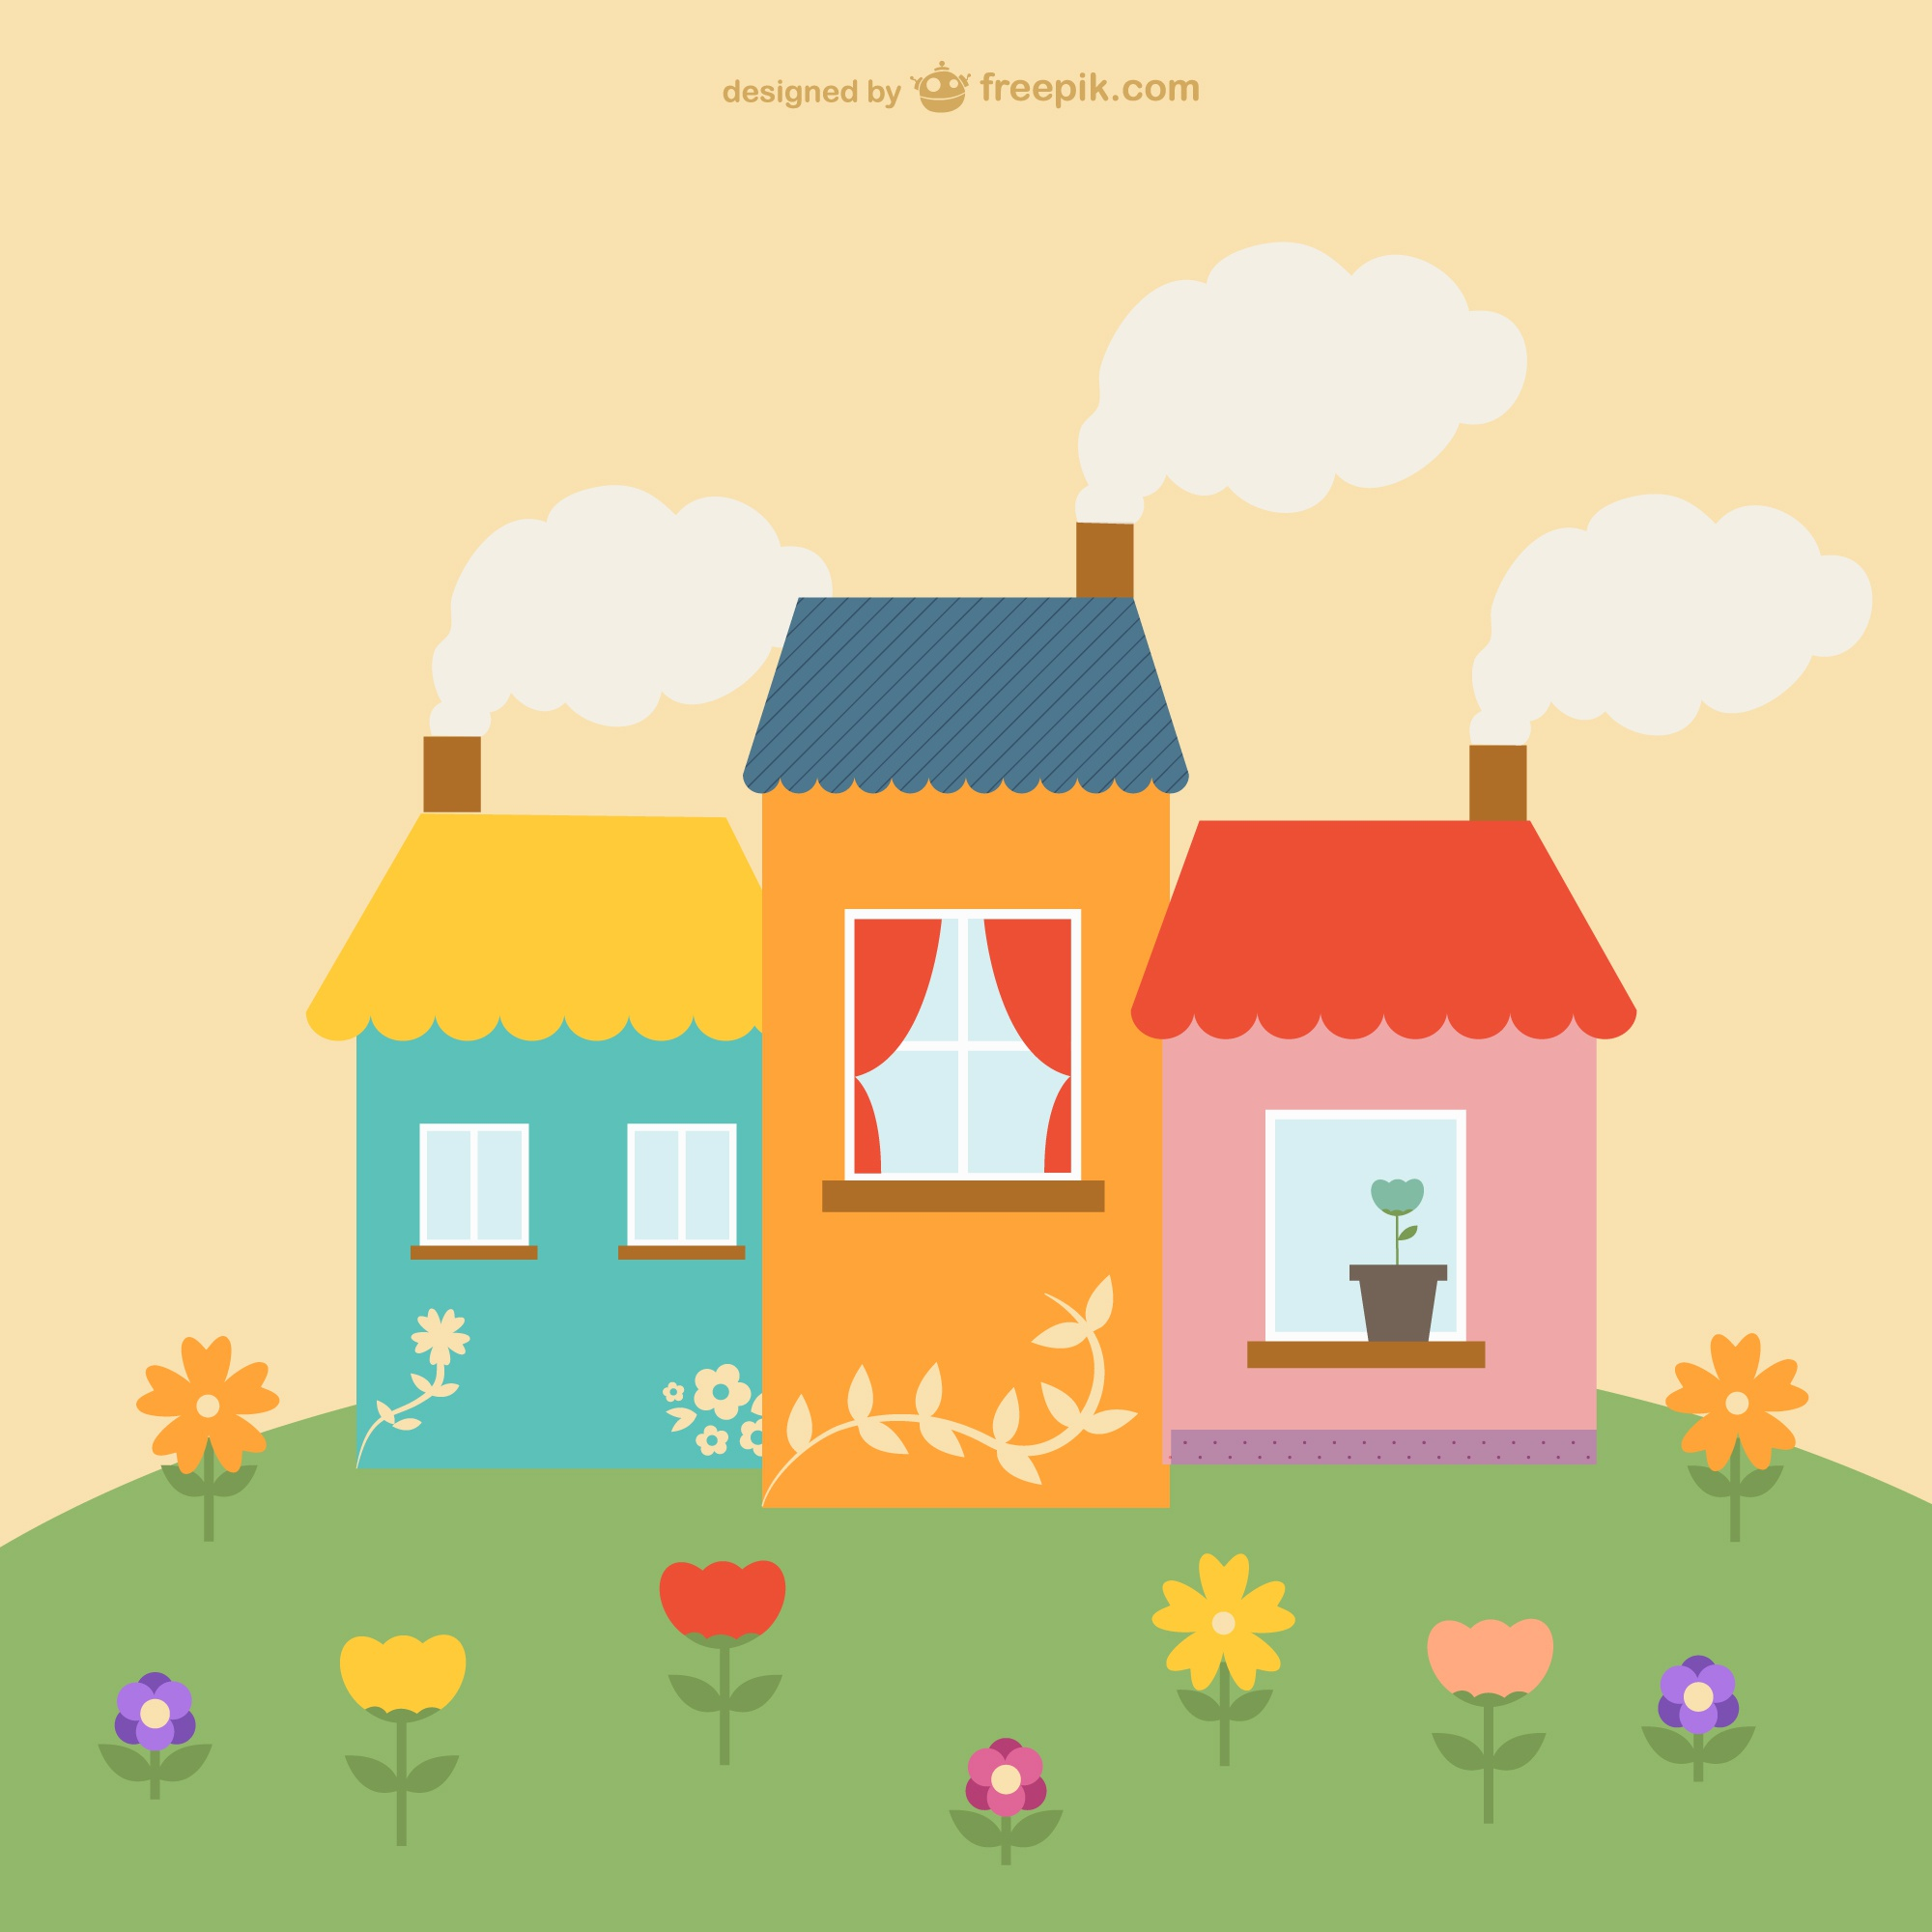 Cute houses and flowers design